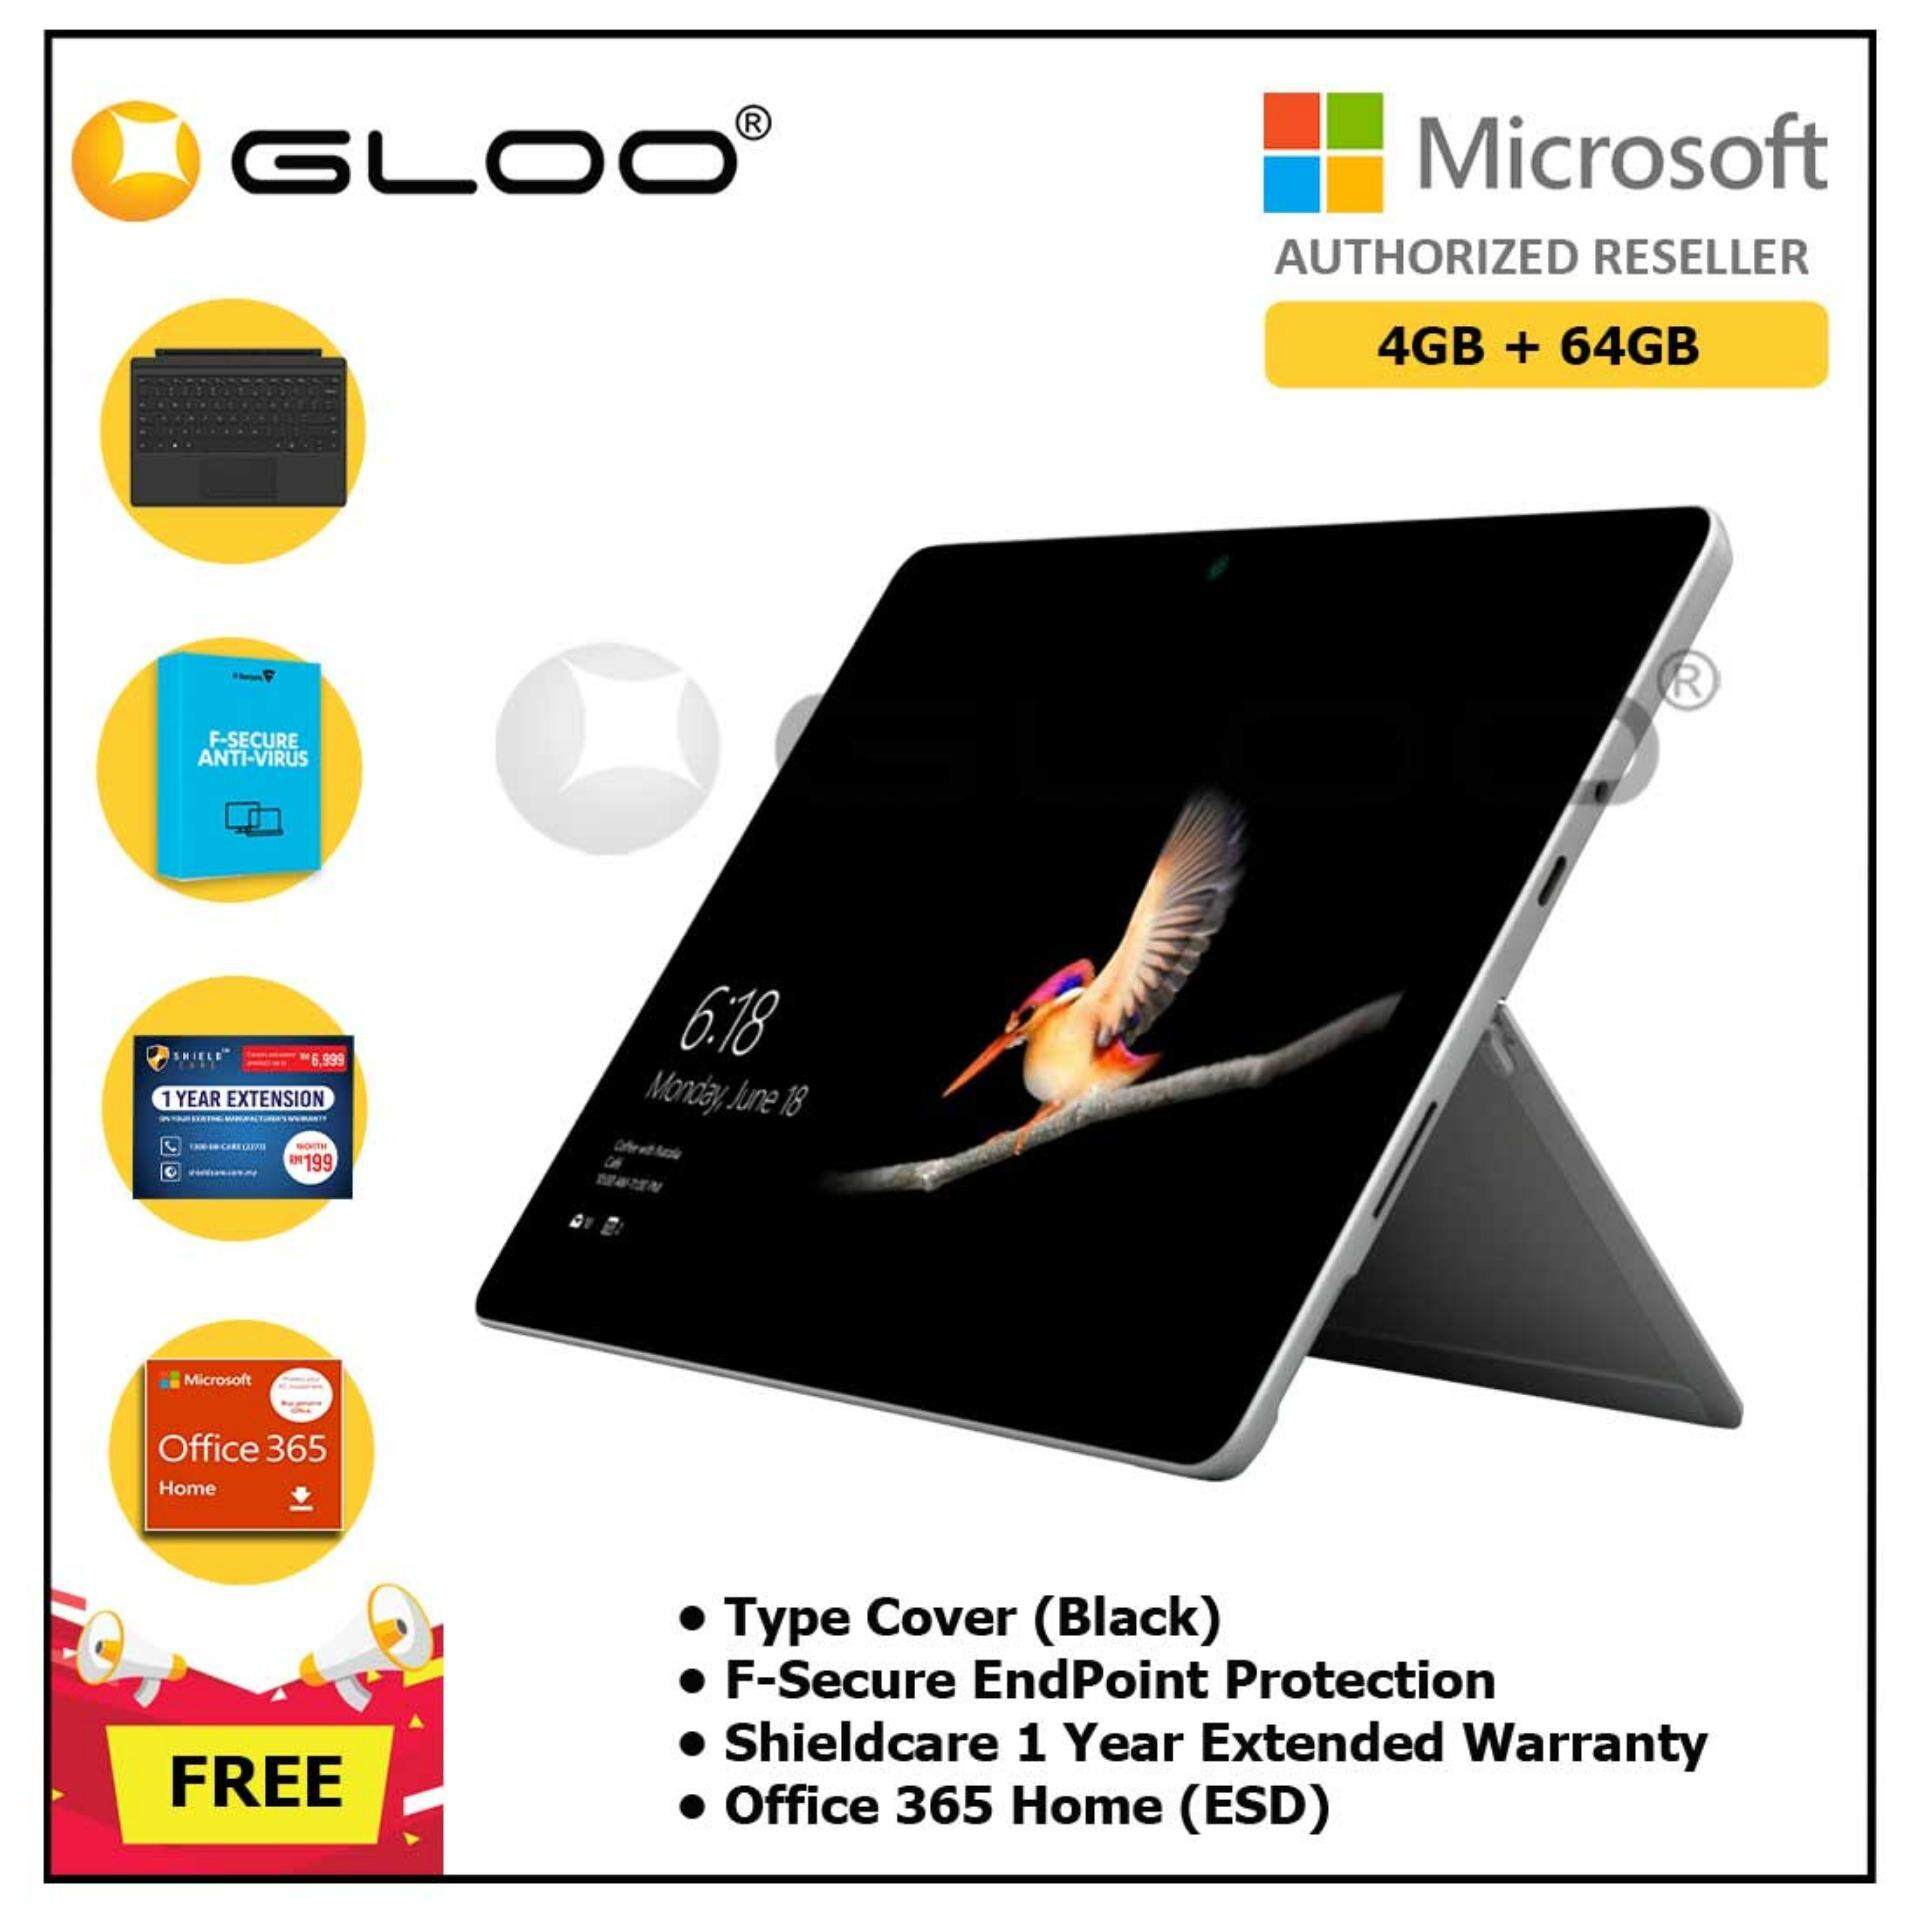 Surface Go Y/4GB 64GB + Surface Go Type Cover Black + Shieldcare 1 Year Extended Warranty + F-Secure EndPoint Protection + Office 365 Home ESD